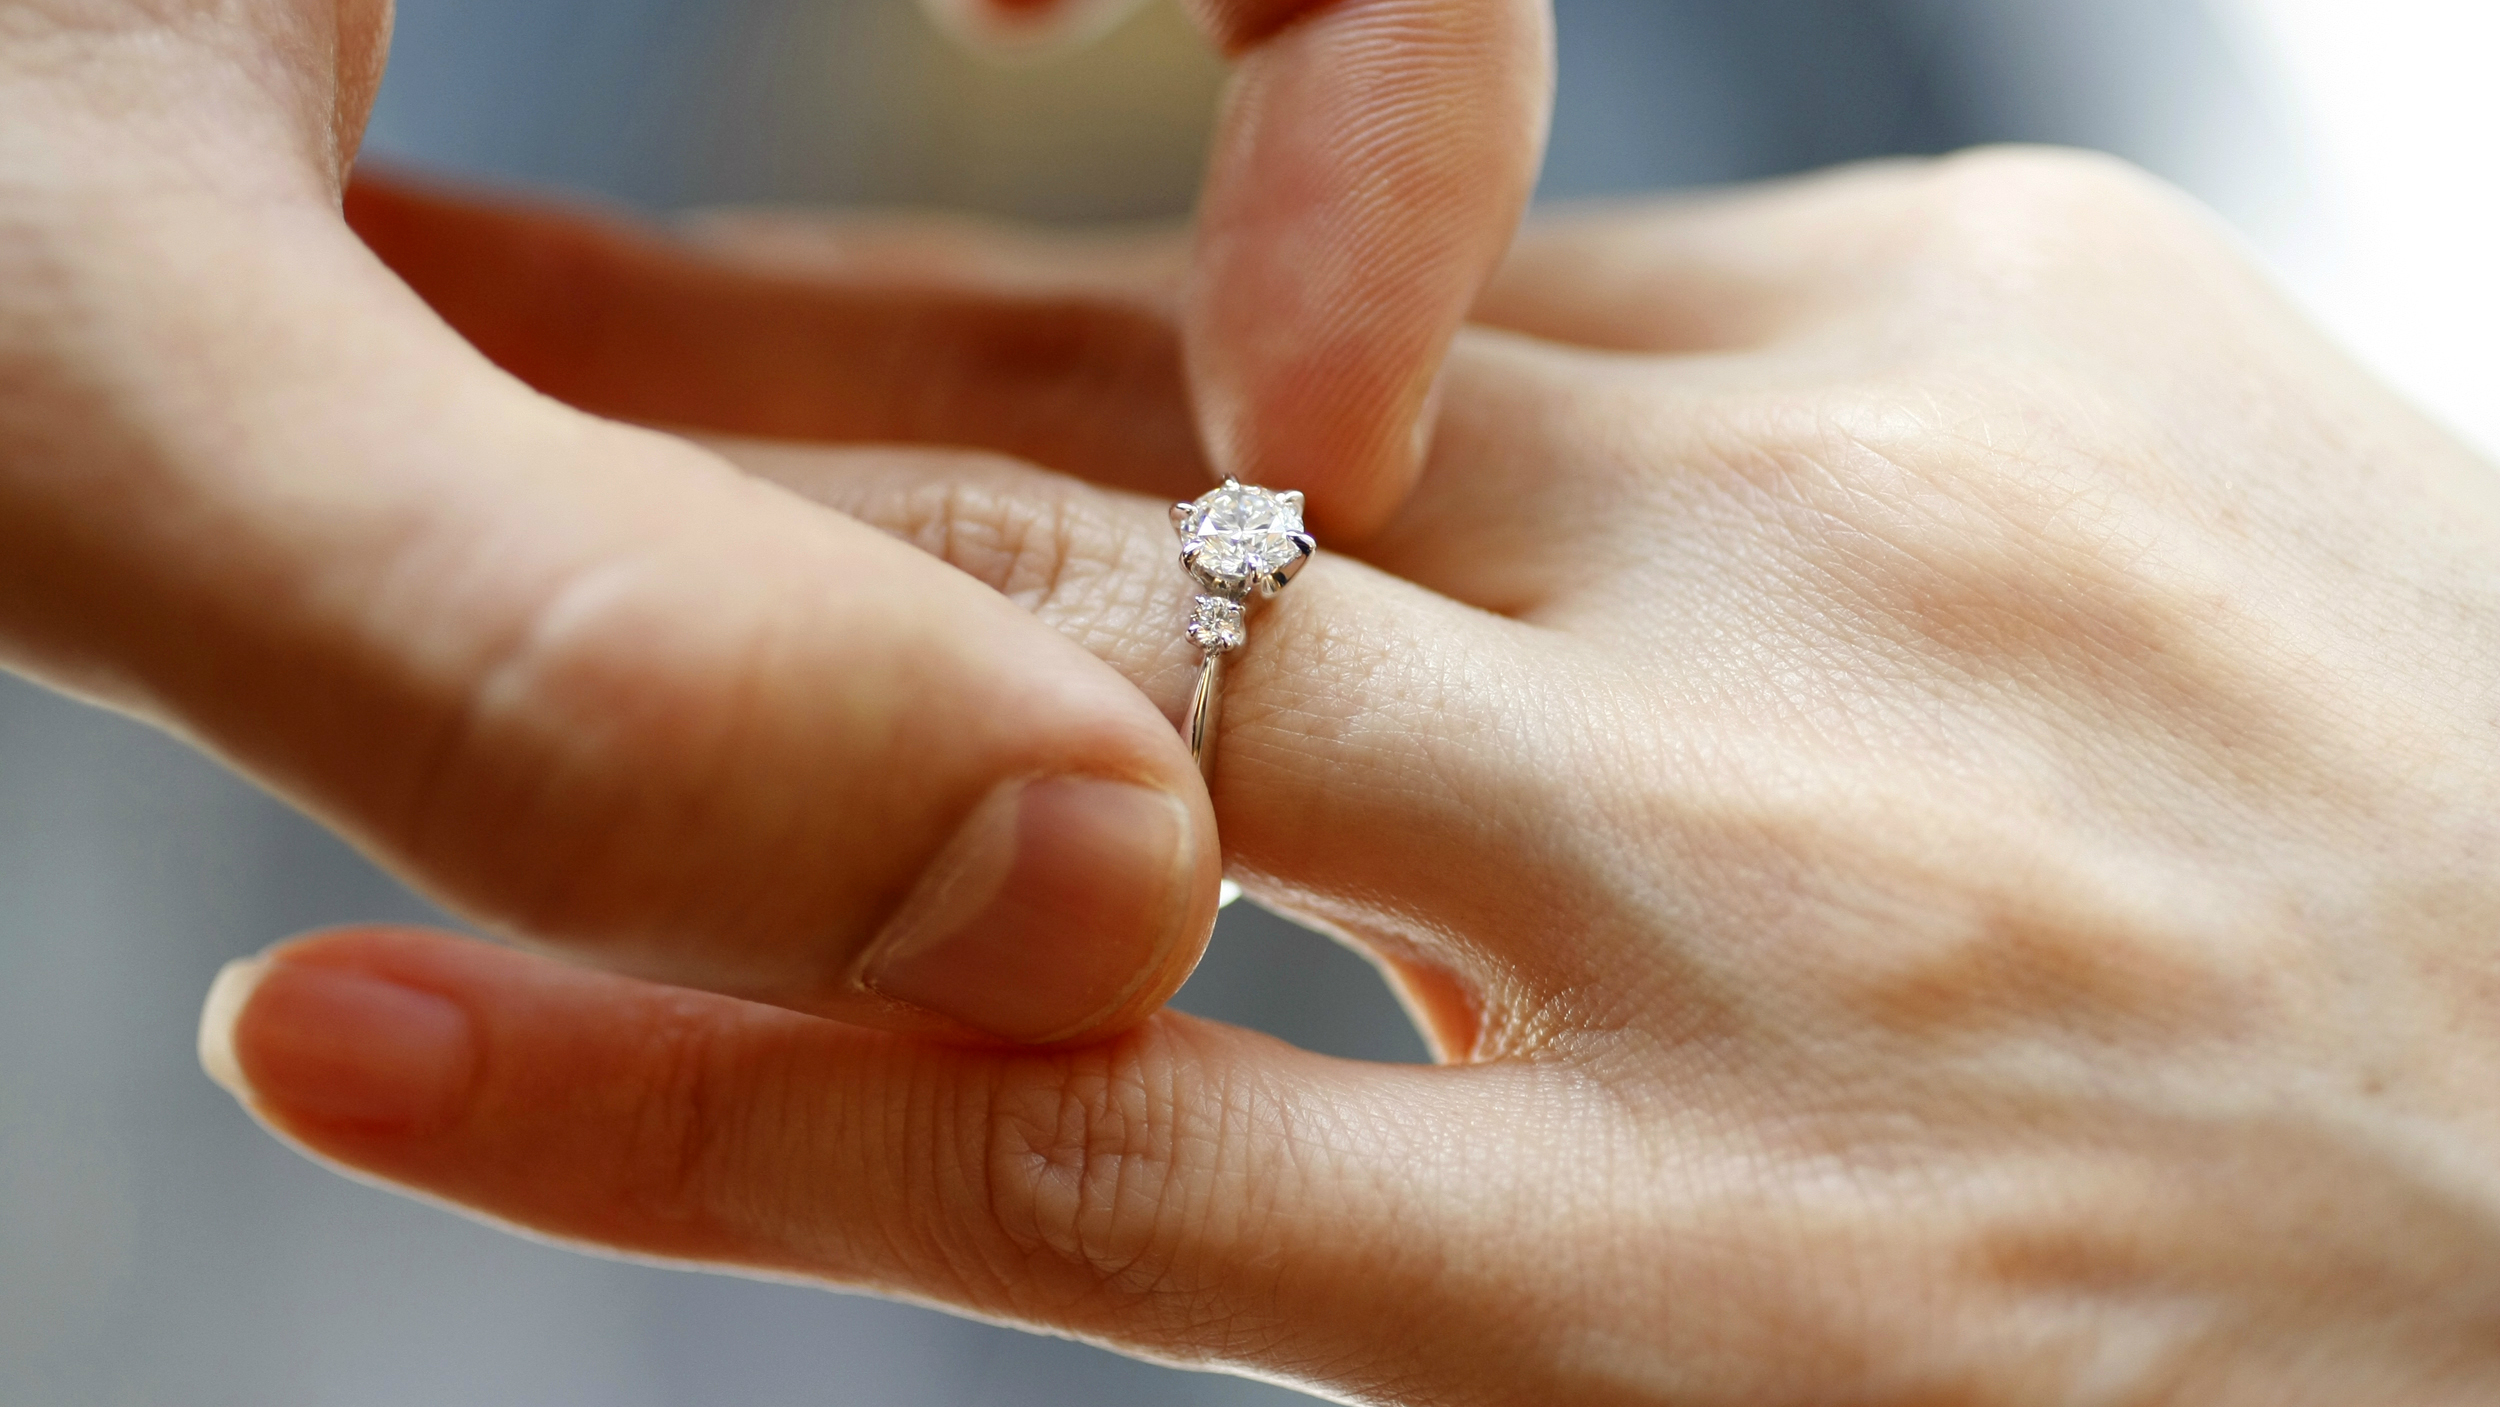 0f5b1aef1 It was a grey afternoon in February when I gave Martin his diamond back. He  was already waiting at a window-side table at the Gramercy Park Hotel when  I ...